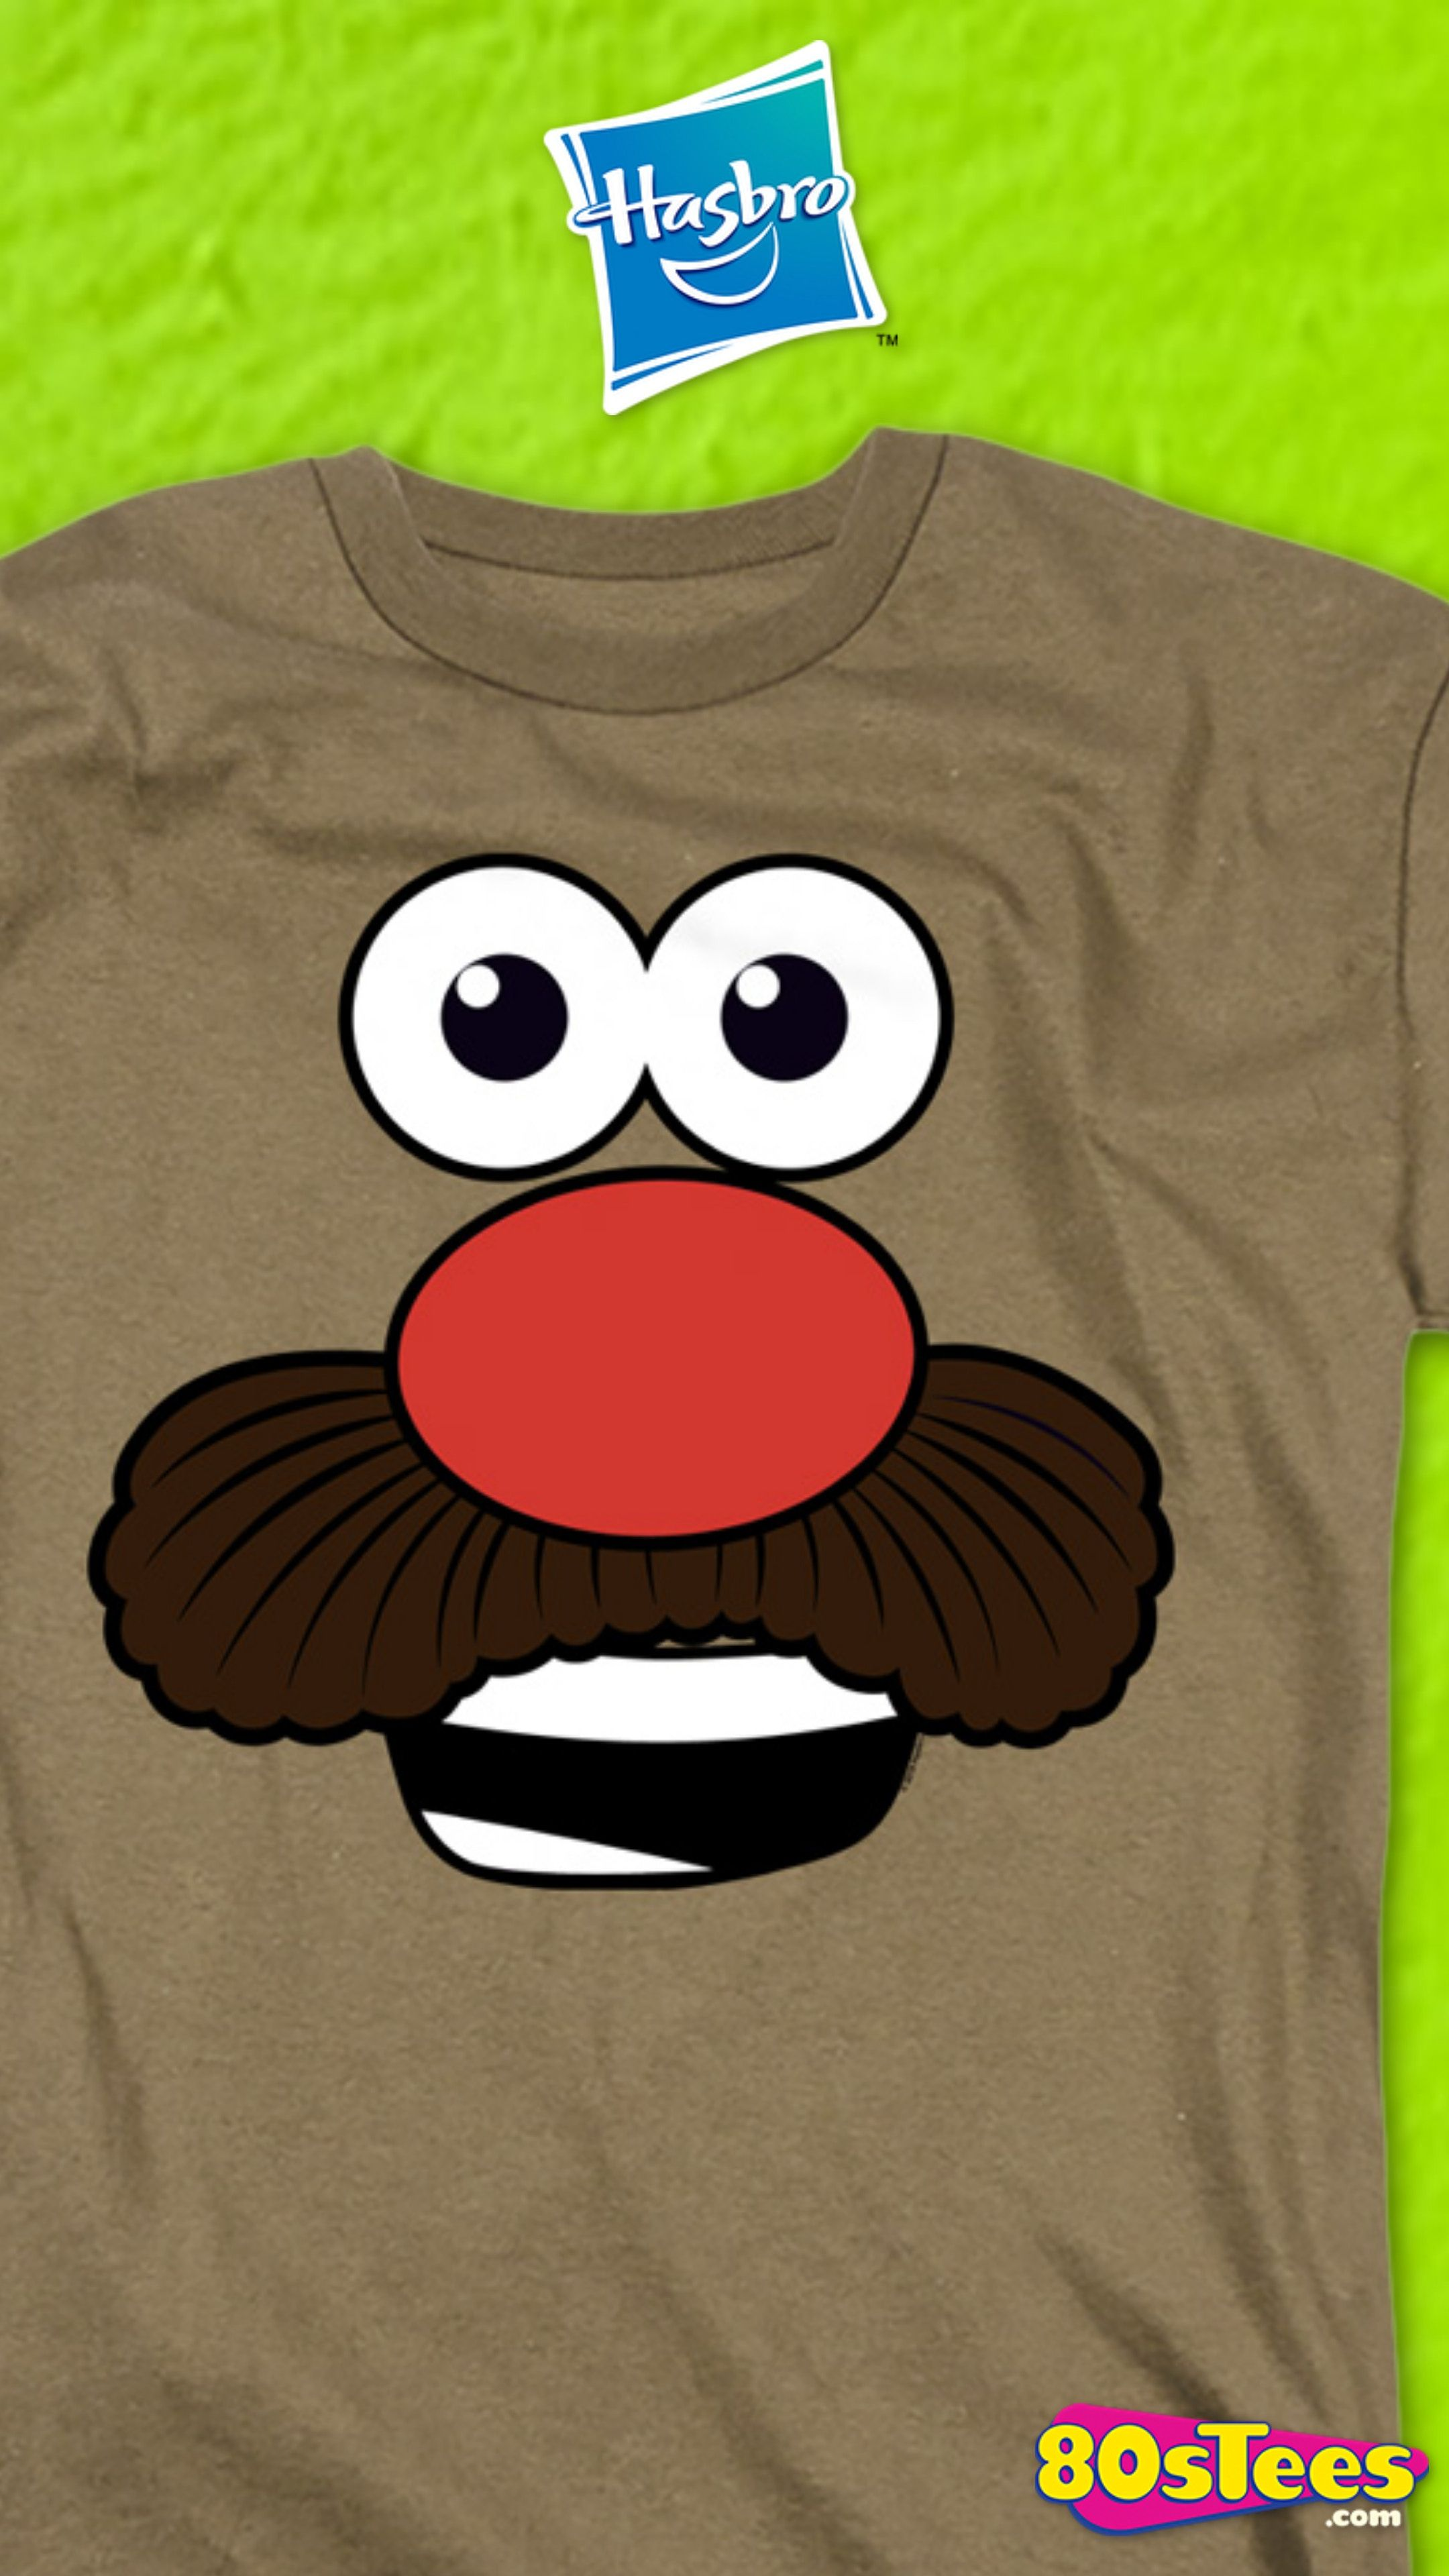 This Mr Potato Head T Shirt Shows The Popular Model Head